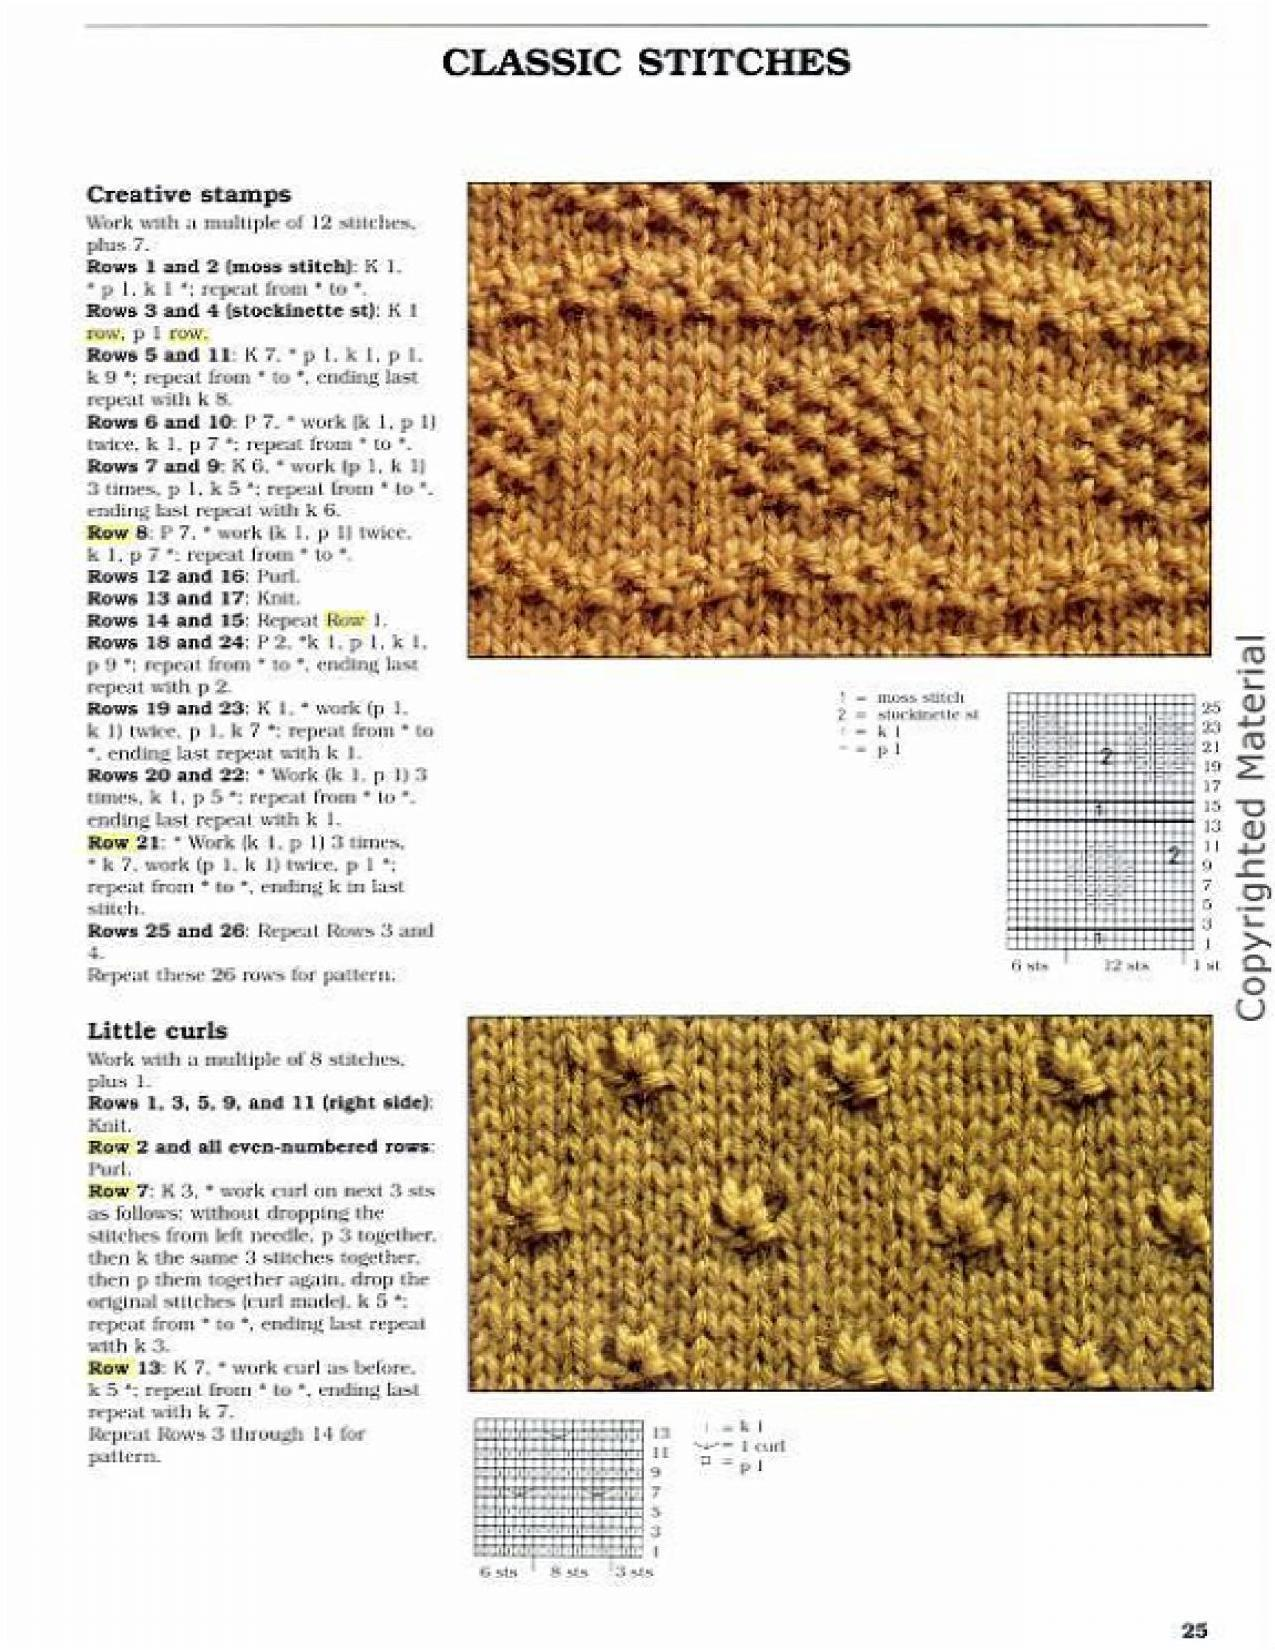 Big Book Of Knitting Stitch Patterns Free Download : ?????: Big Book of Knitting Stitch Patterns 2005 (???????, ?????, ?????) - ??...